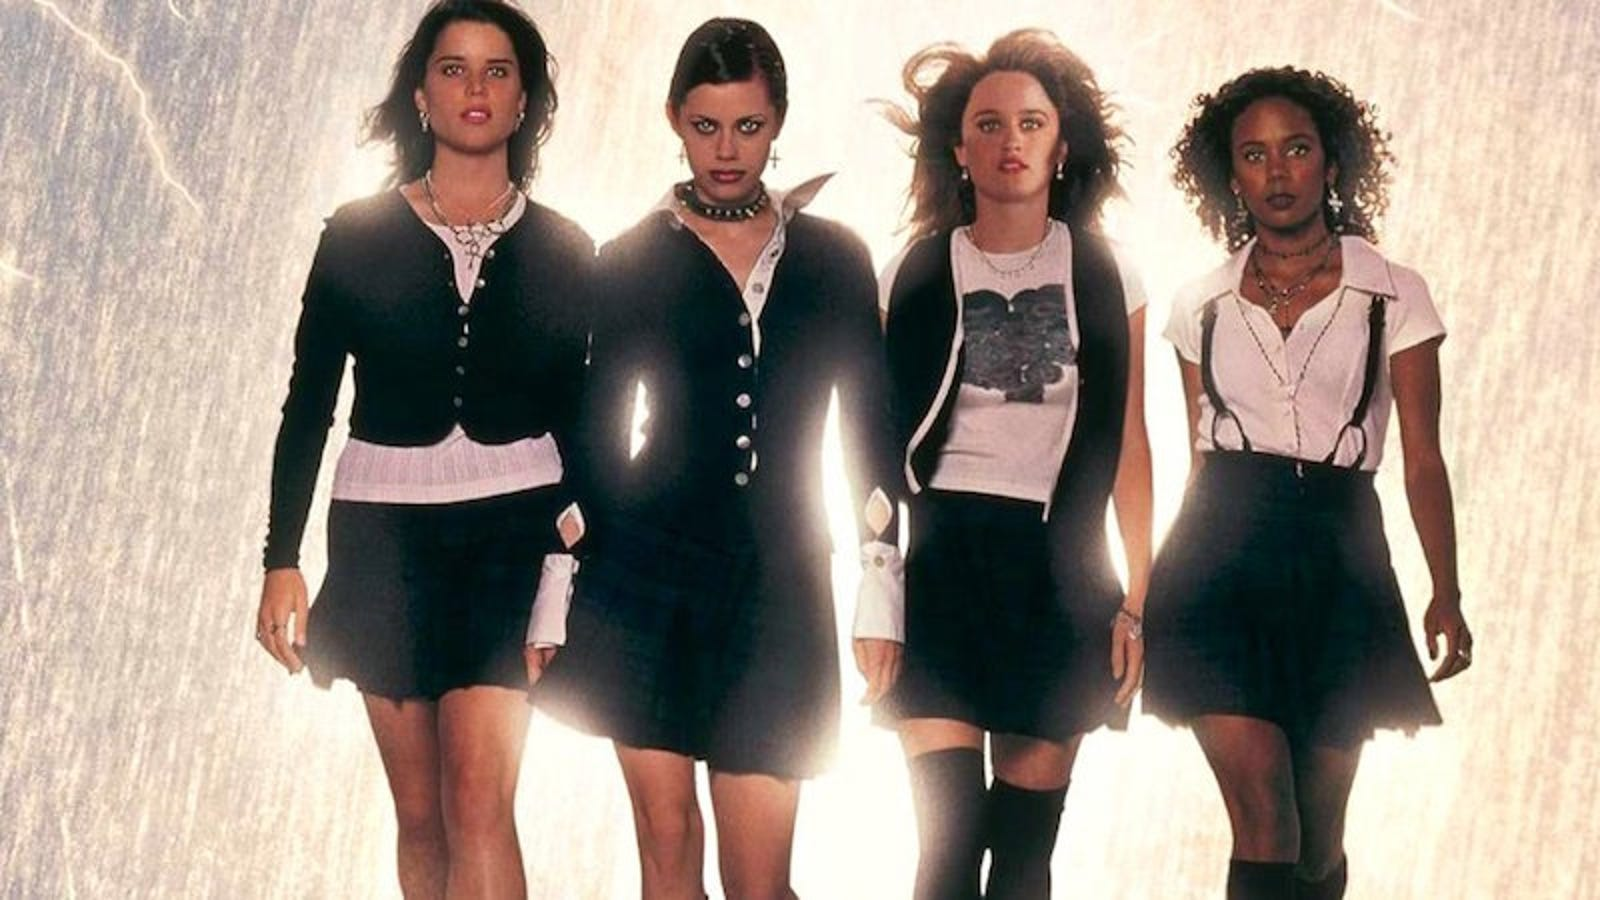 Yes '90s Cult Classic The Craft' Is Getting the RemakeTreatment